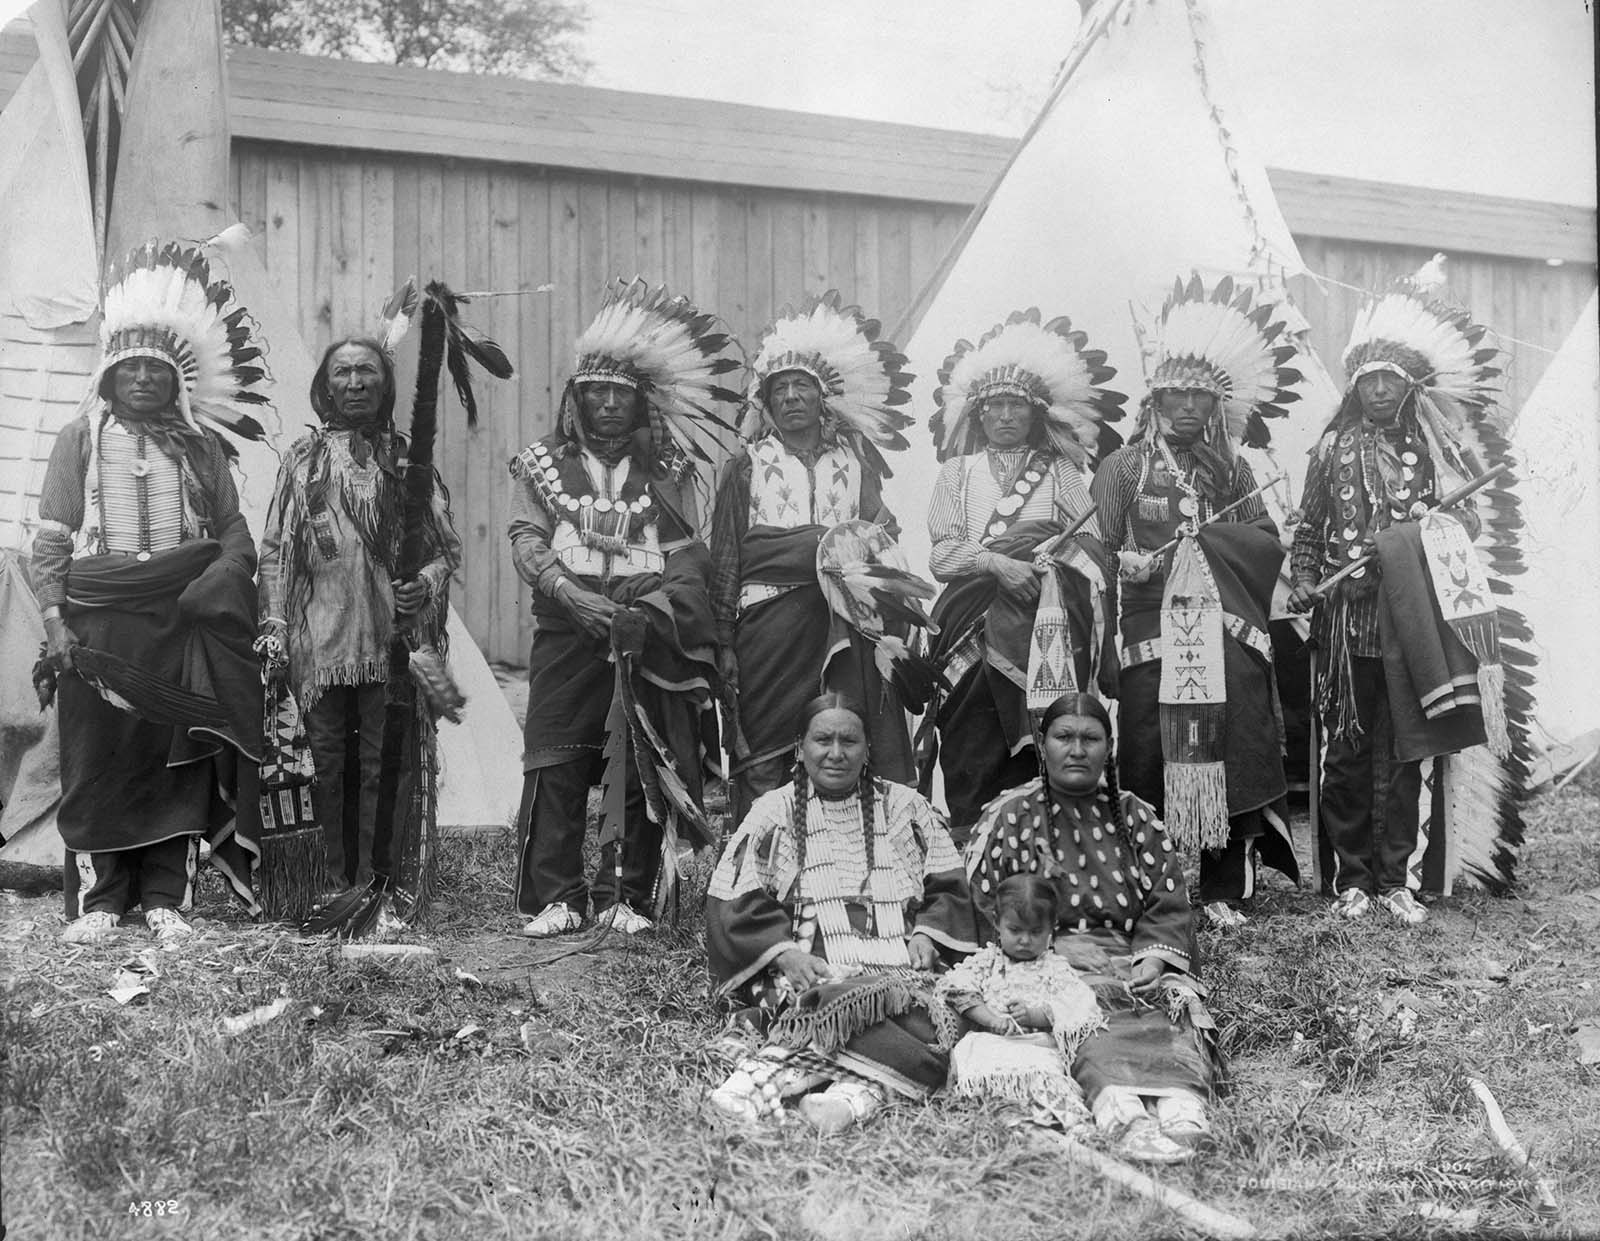 Chief Yellow Hair and his council standing in front of replicas of teepees at a human zoo at the 1904 World's Fair in St Louis, Missouri.